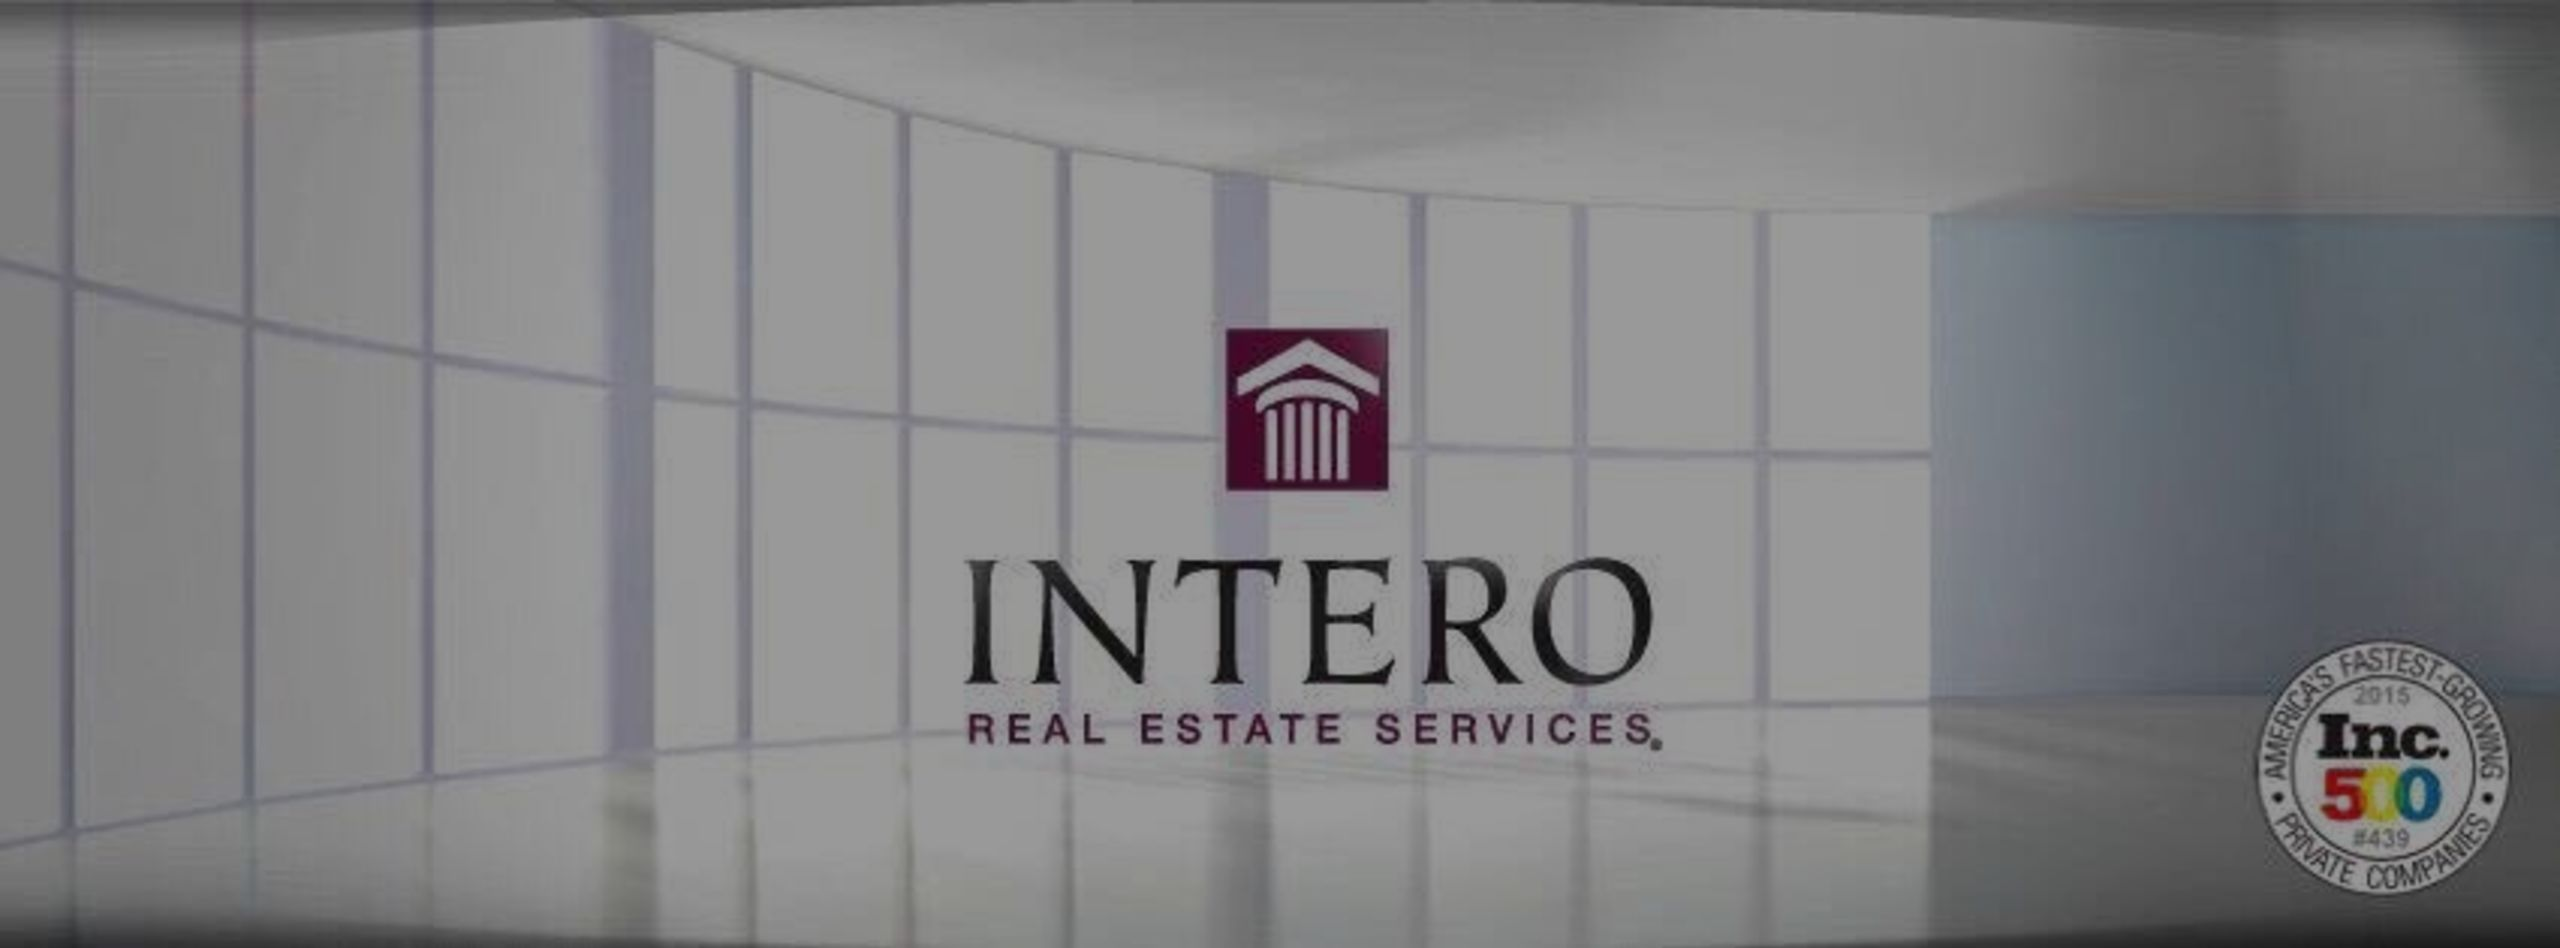 Intero Honored as a Top Corporate Philanthropists in SF Bay Area